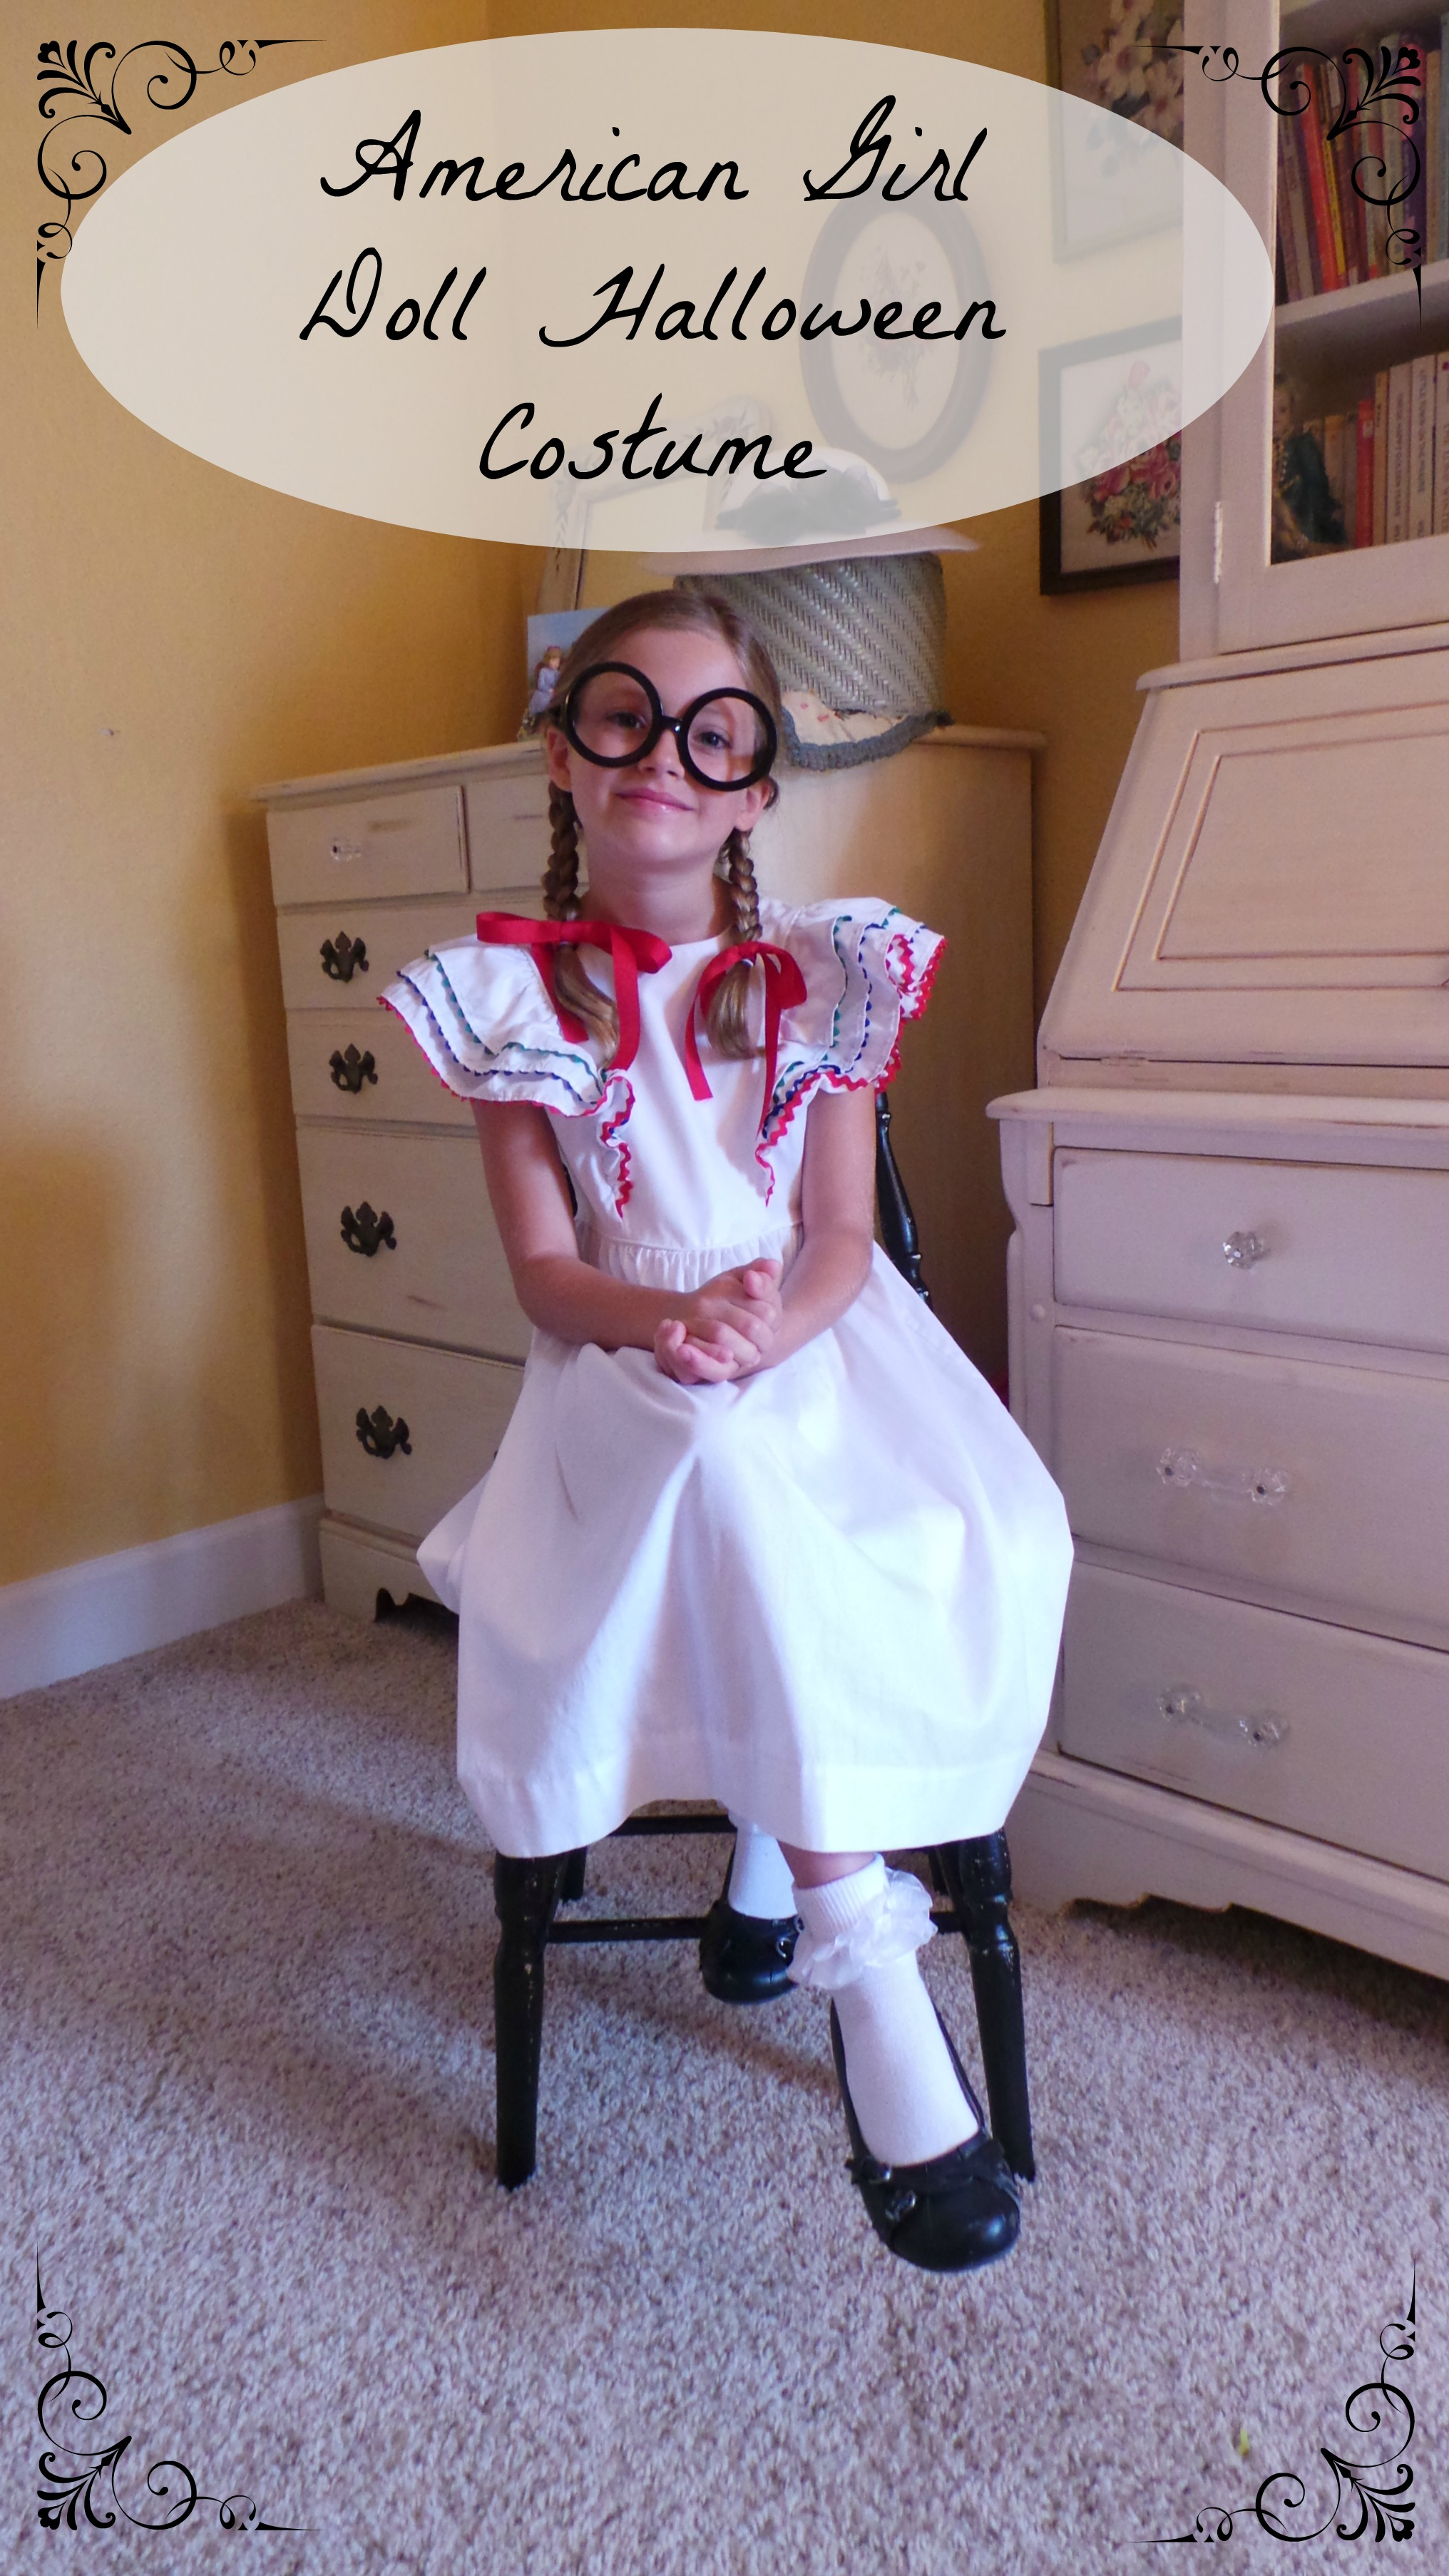 American Girl Doll Halloween Costume